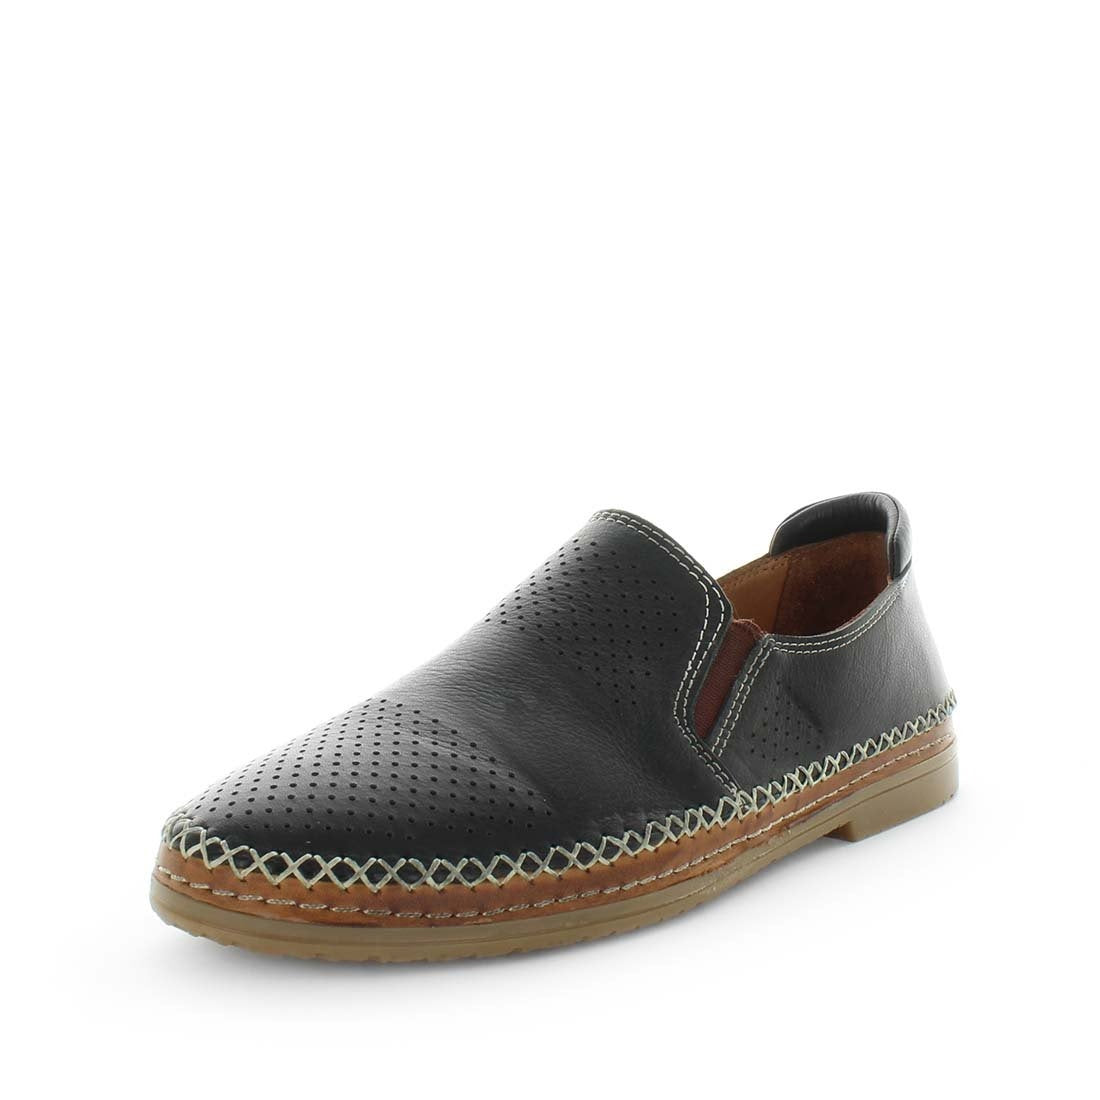 womens leather shoes, leather laofers, zola, womens flat shoes